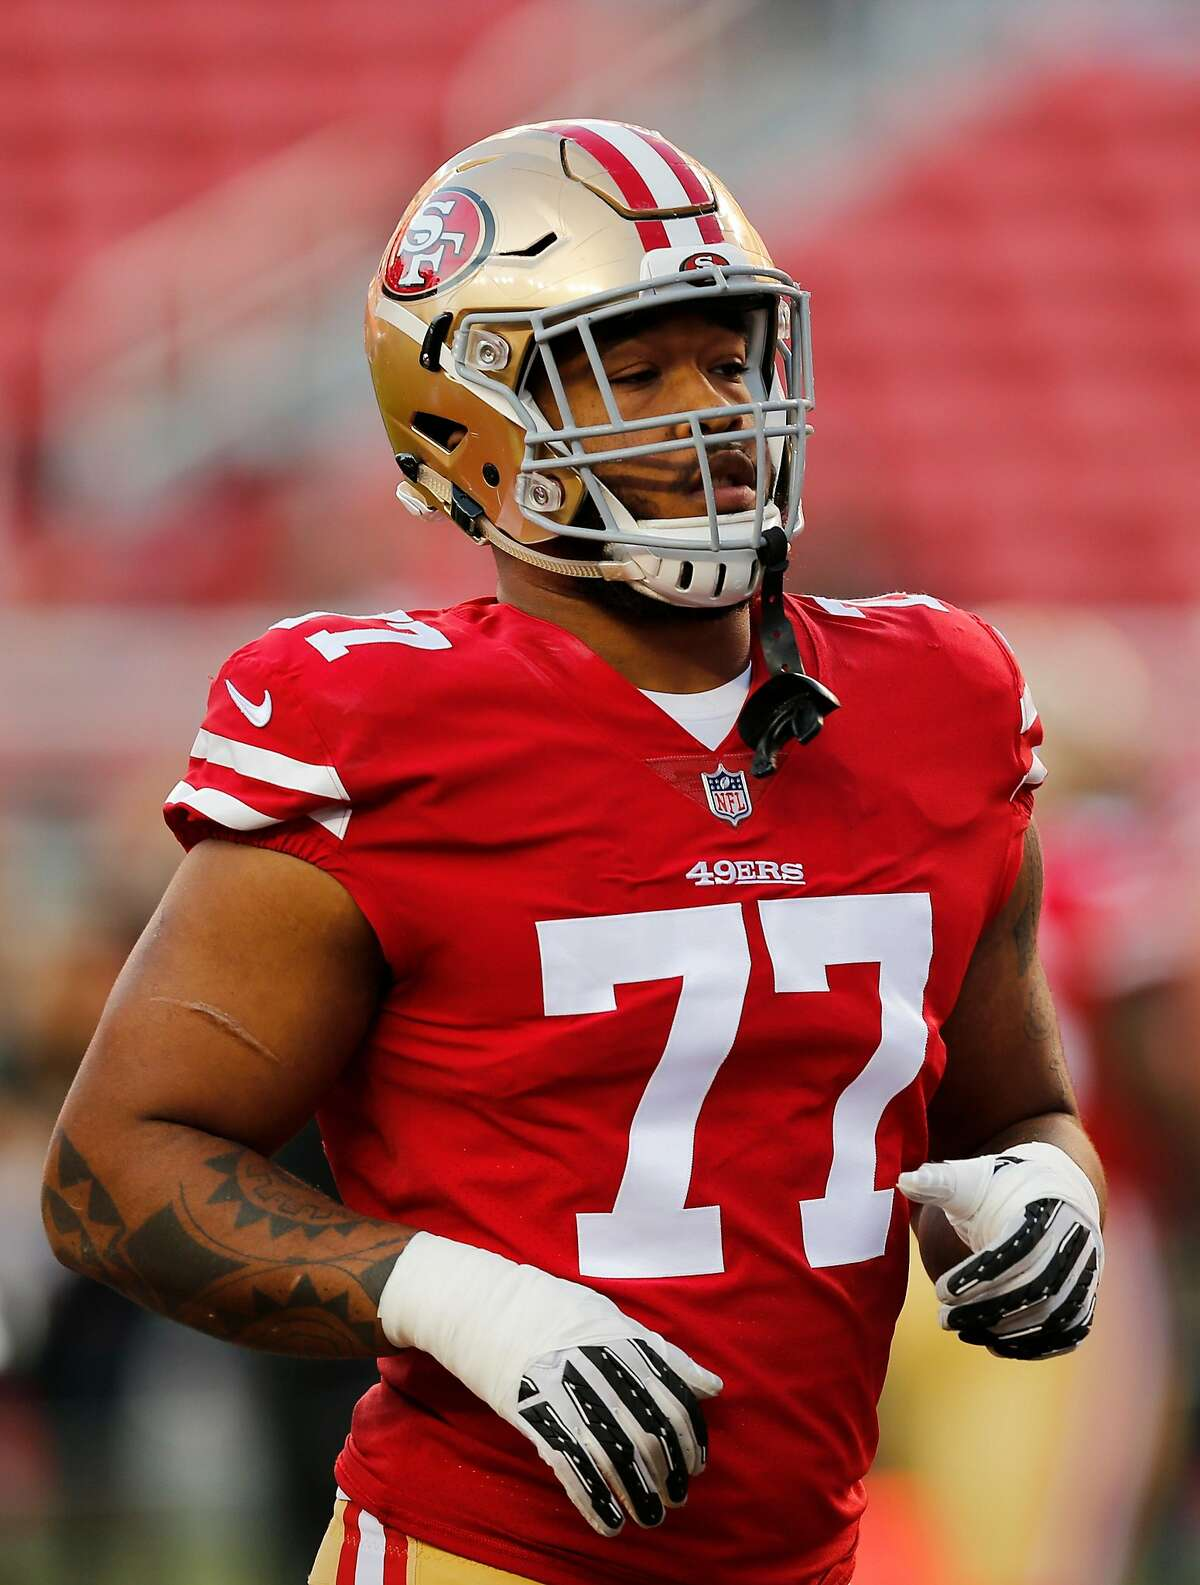 San Francisco 49ers defensive tackle Jullian Taylor (77) practices before an NFL preseason game against the Los Angeles Chargers at Levi's Stadium on Thursday, Aug. 30, 2018, in Santa Clara, Calif.